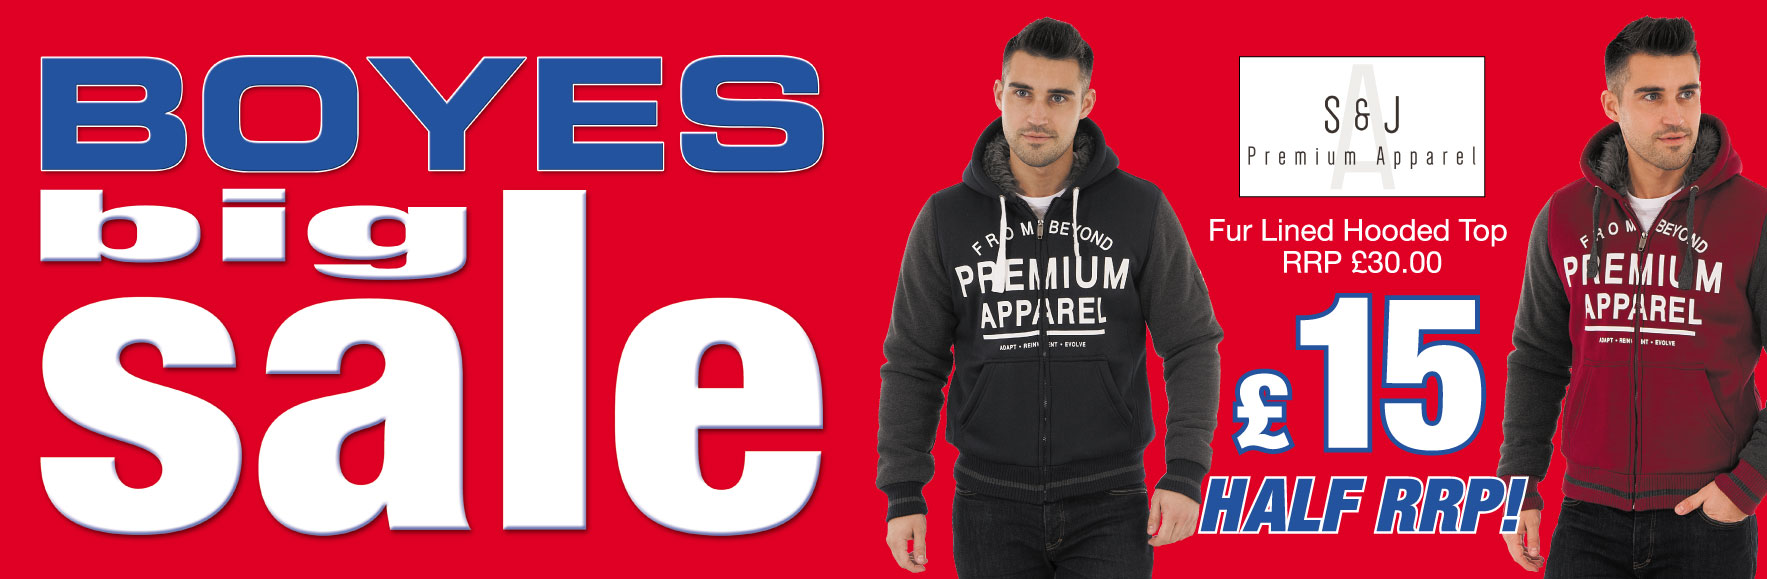 Smith and Jones Fur Linded Hooded Tops RRP £30 ONLY £15